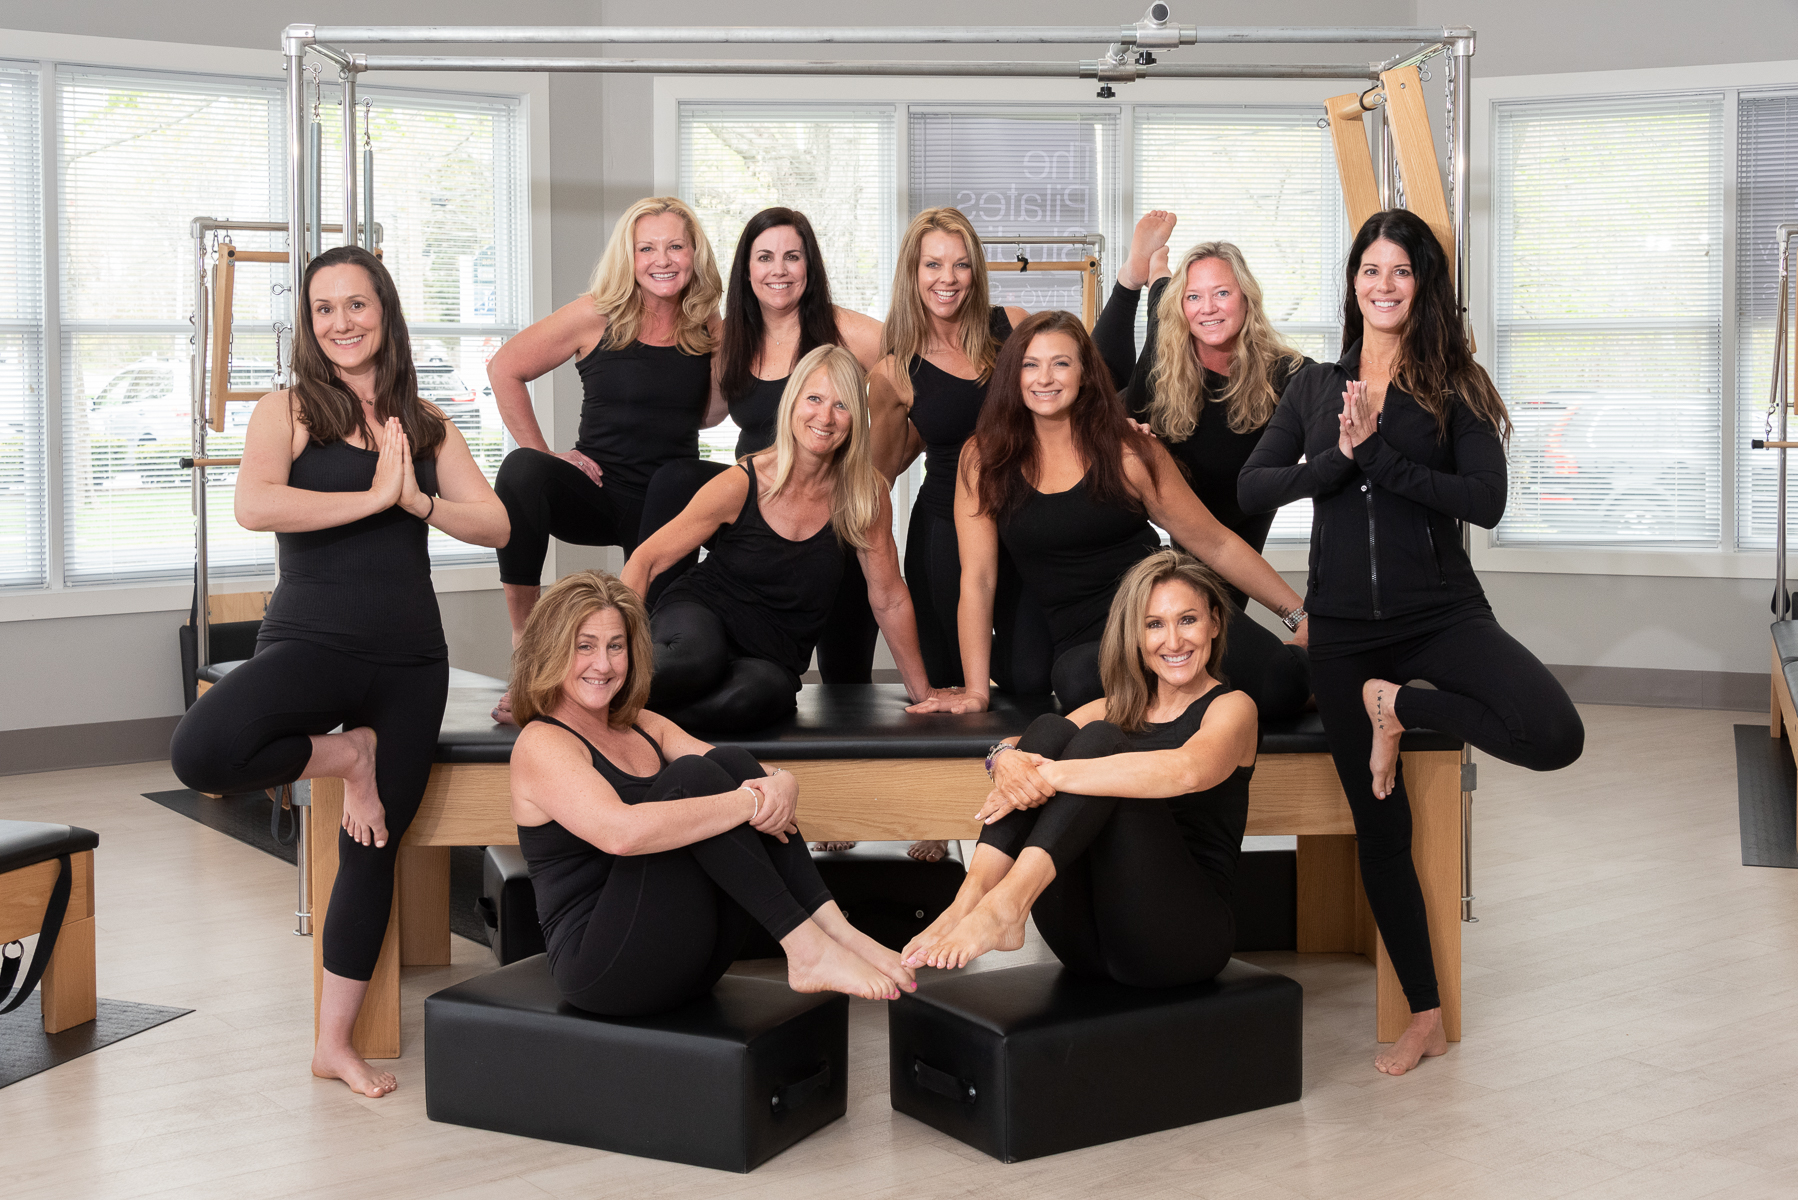 prive-swiss-fitness-group-picture